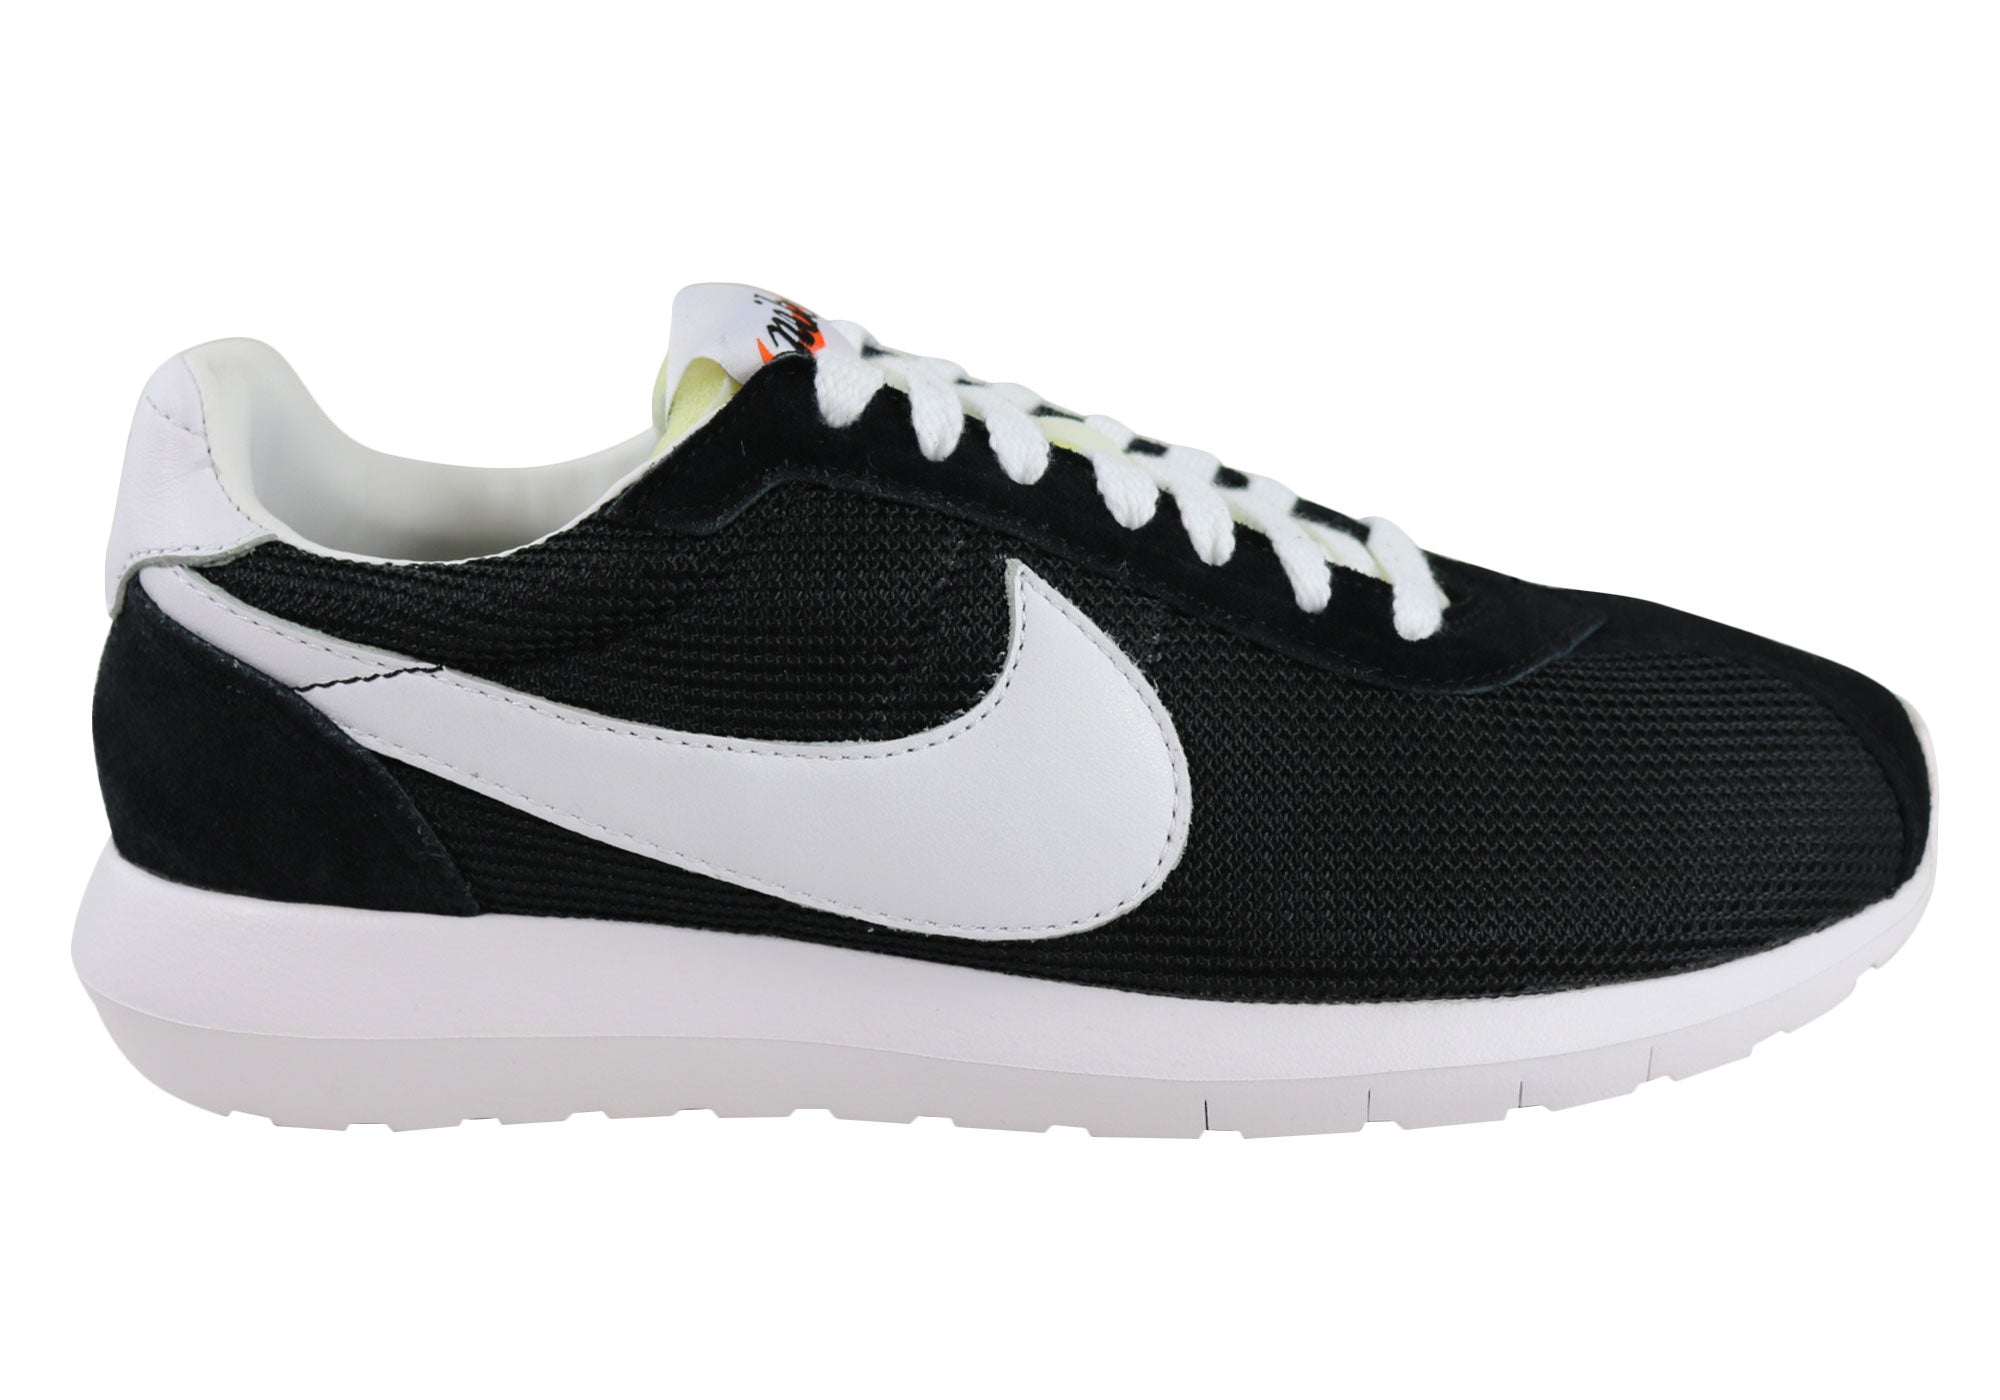 finest selection bf70d 09407 Home Nike W Roshe LD-1000 QS Mens Lace Up Casual Shoes. Black  ...